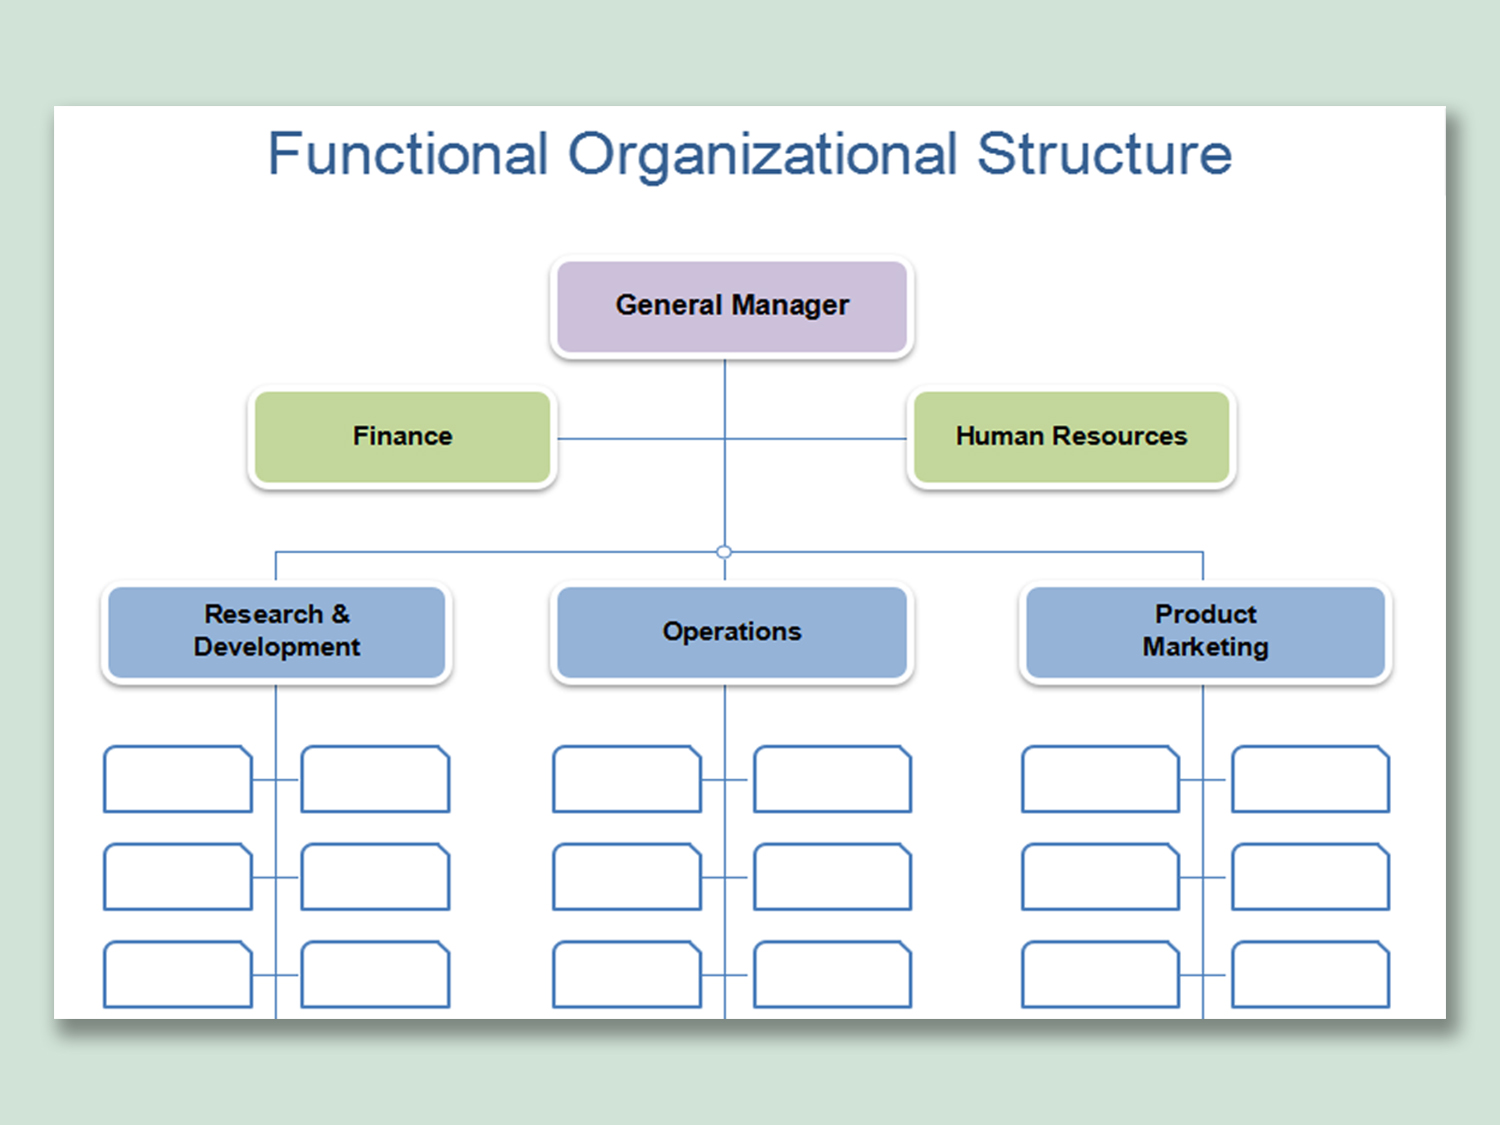 Microsoft Organizational Chart Template from d4z1onkegyrs5.cloudfront.net